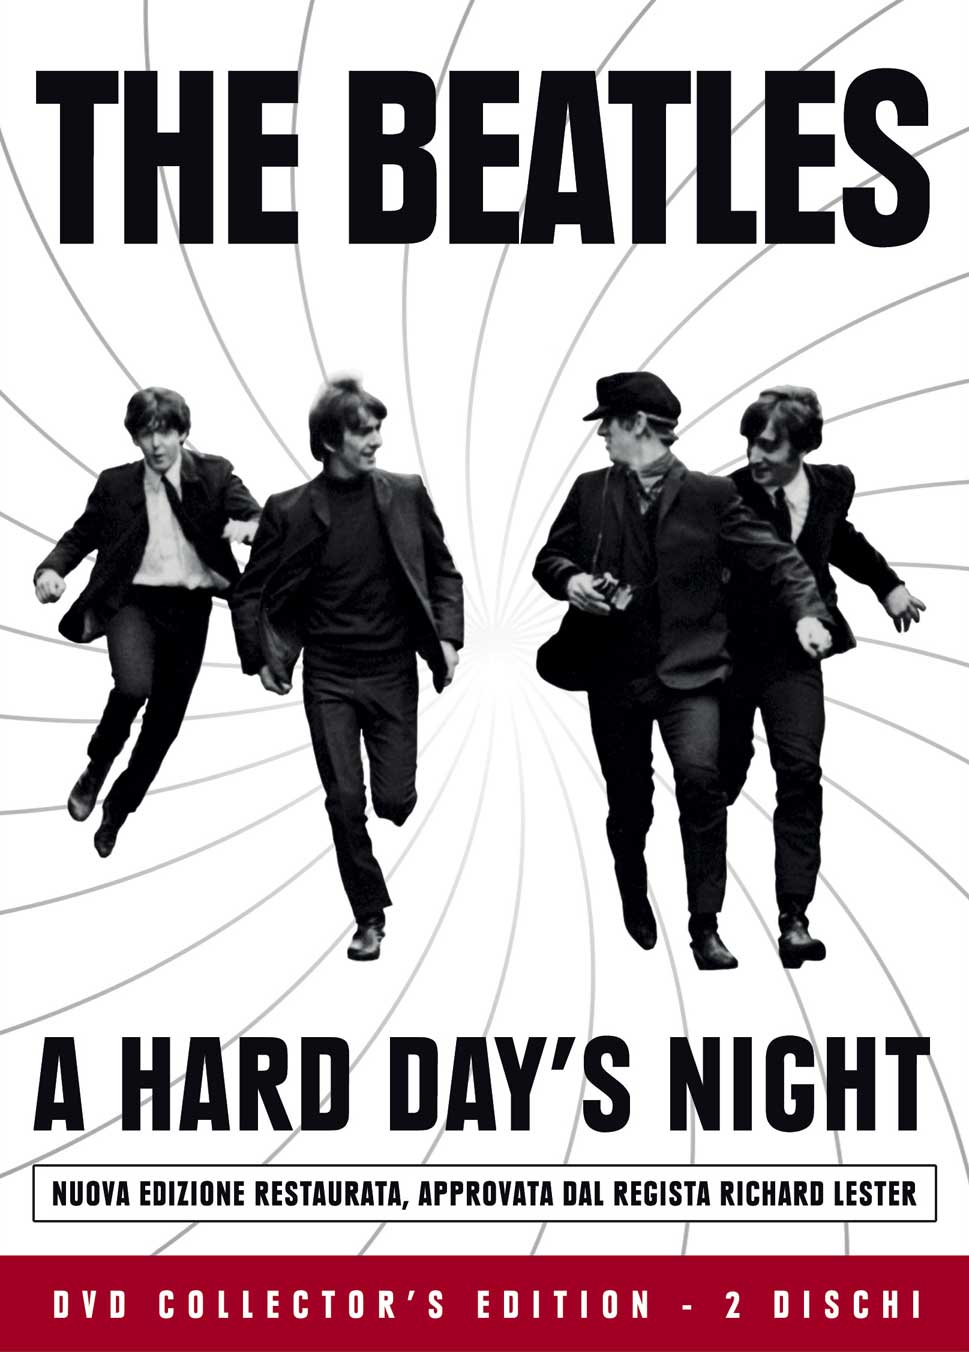 THE BEATLES - A HARD DAY'S NIGHT (CE) (2 DVD+BOOKLET) (DVD)